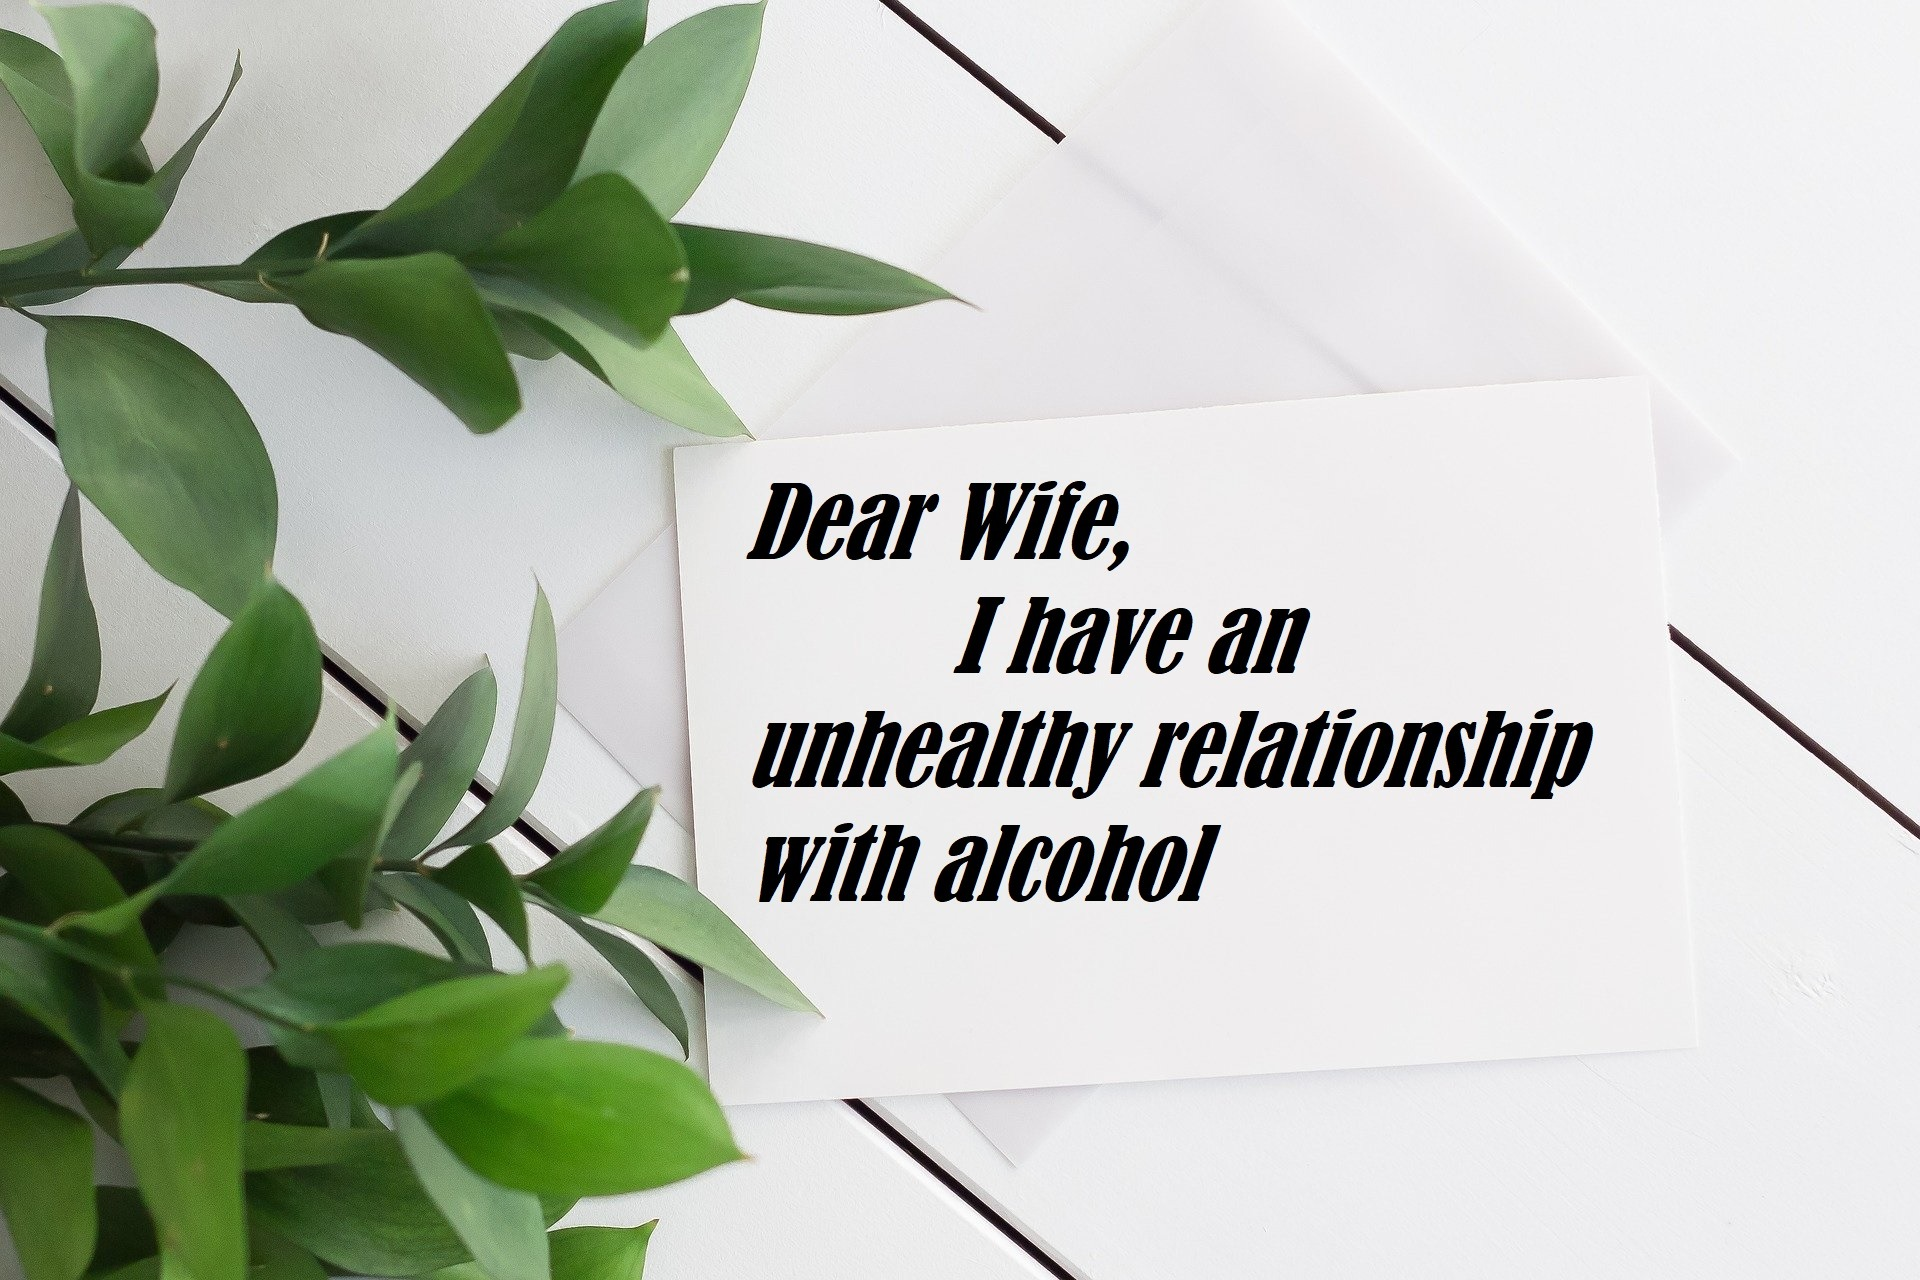 Dear Wife I Have an Unhealthy Relationship with Alcohol